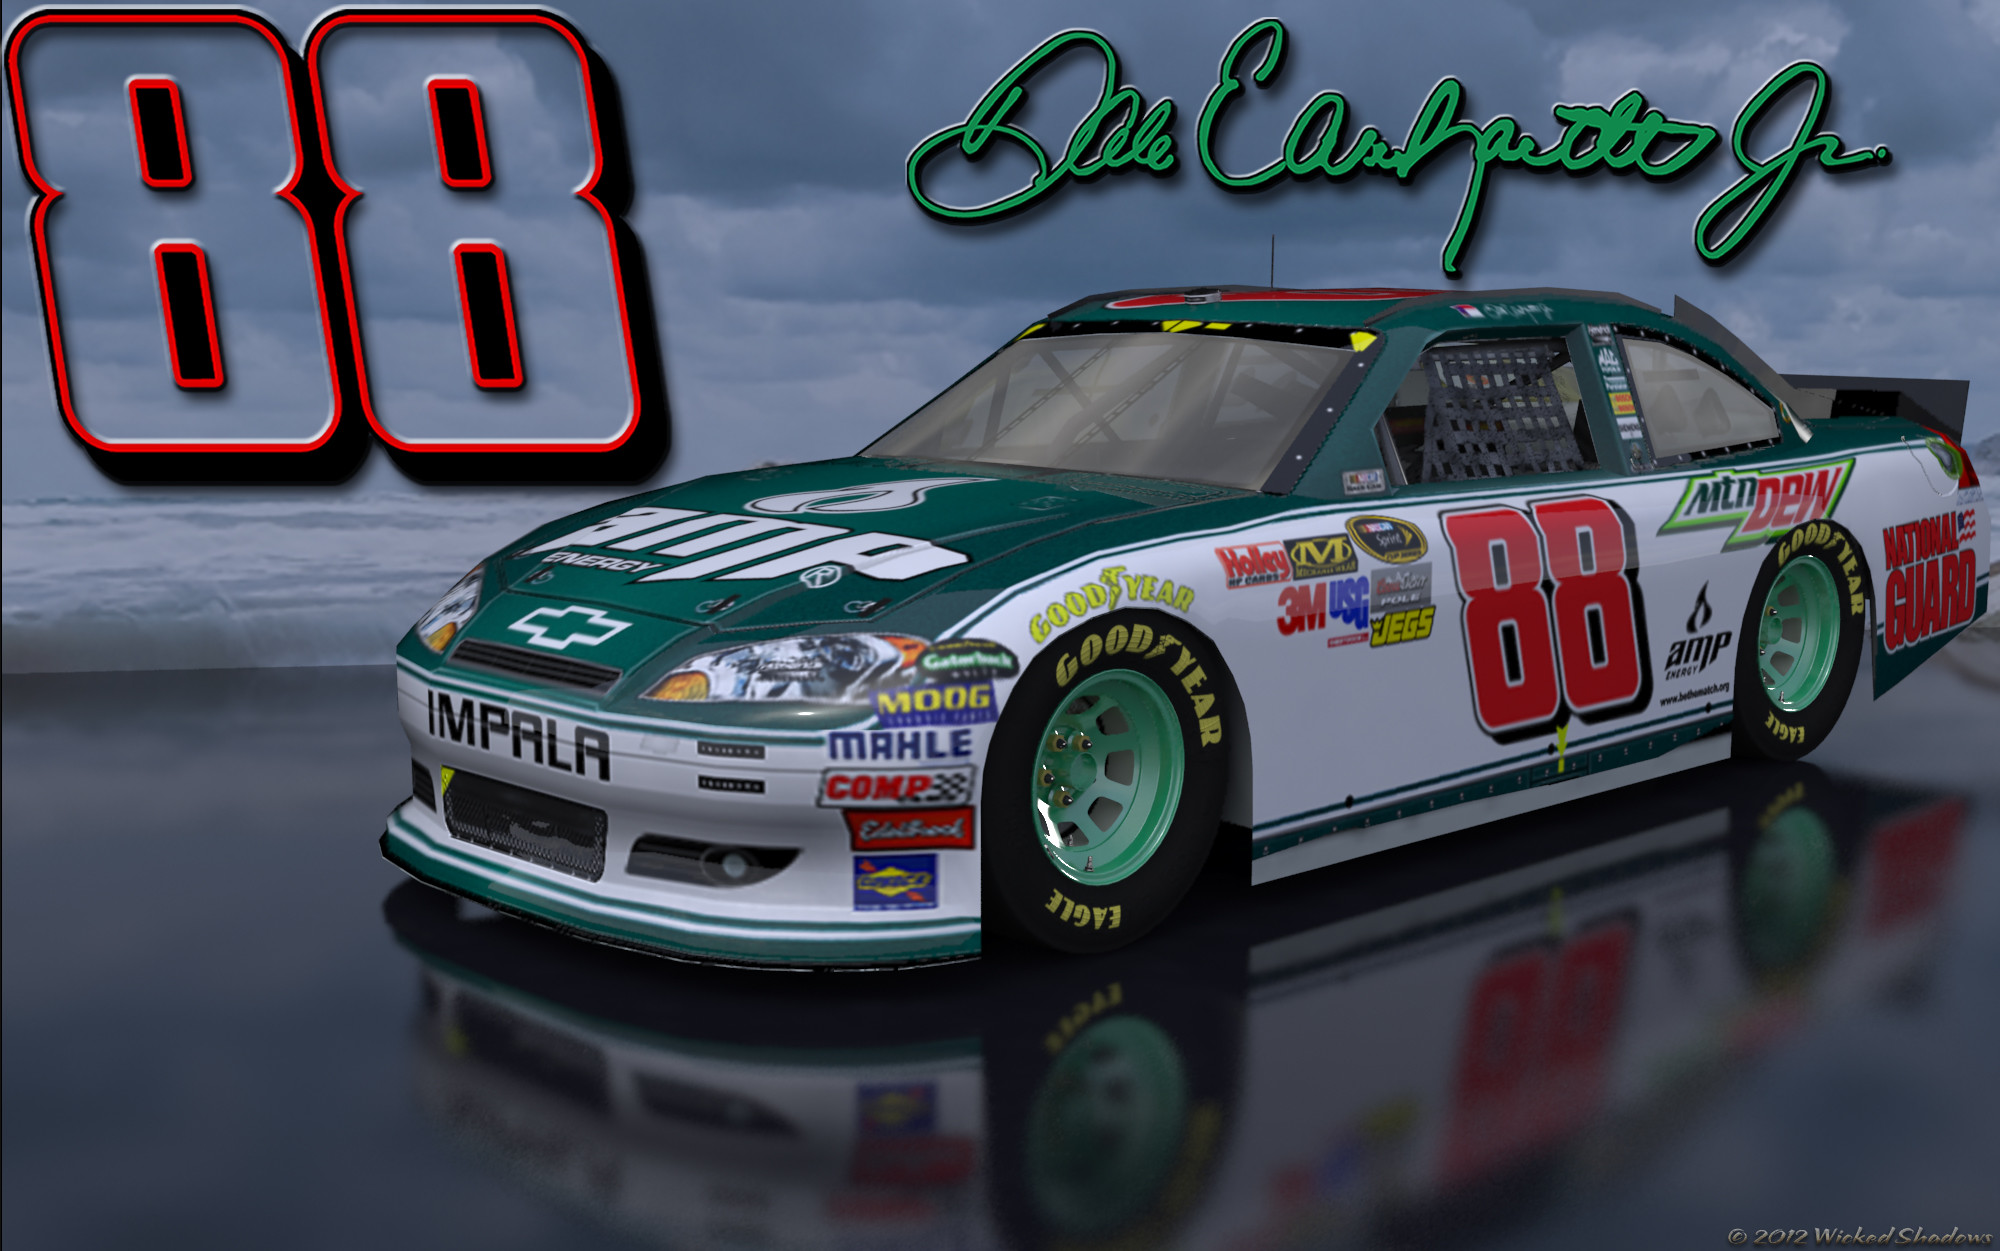 Dale Earnhardt Jr Amp Green 1 Outdoors Wallpaper With a sweet beach .